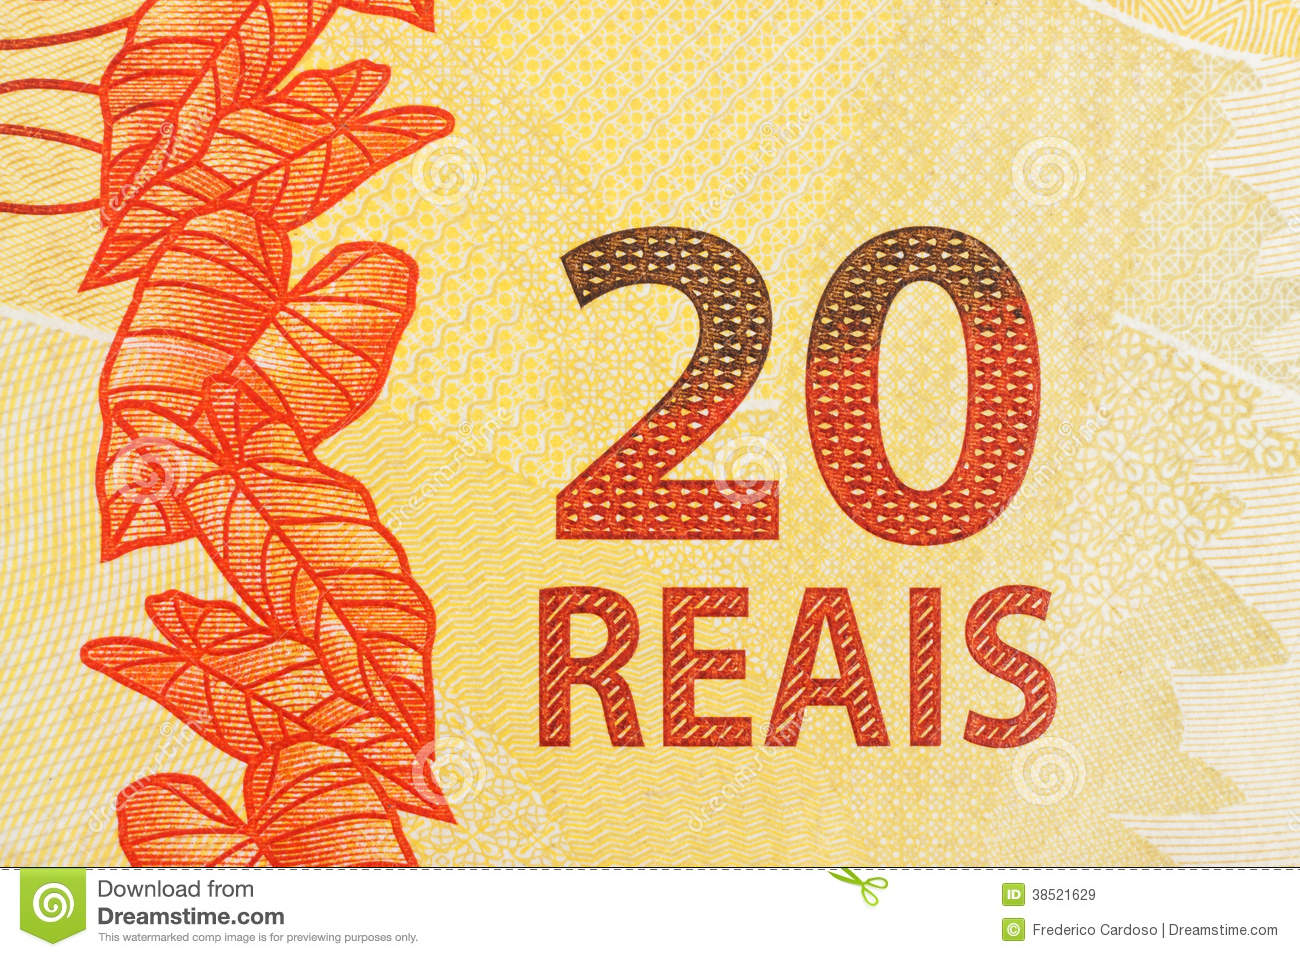 20 Reais Pictures to Pin on Pinterest - PinsDaddy